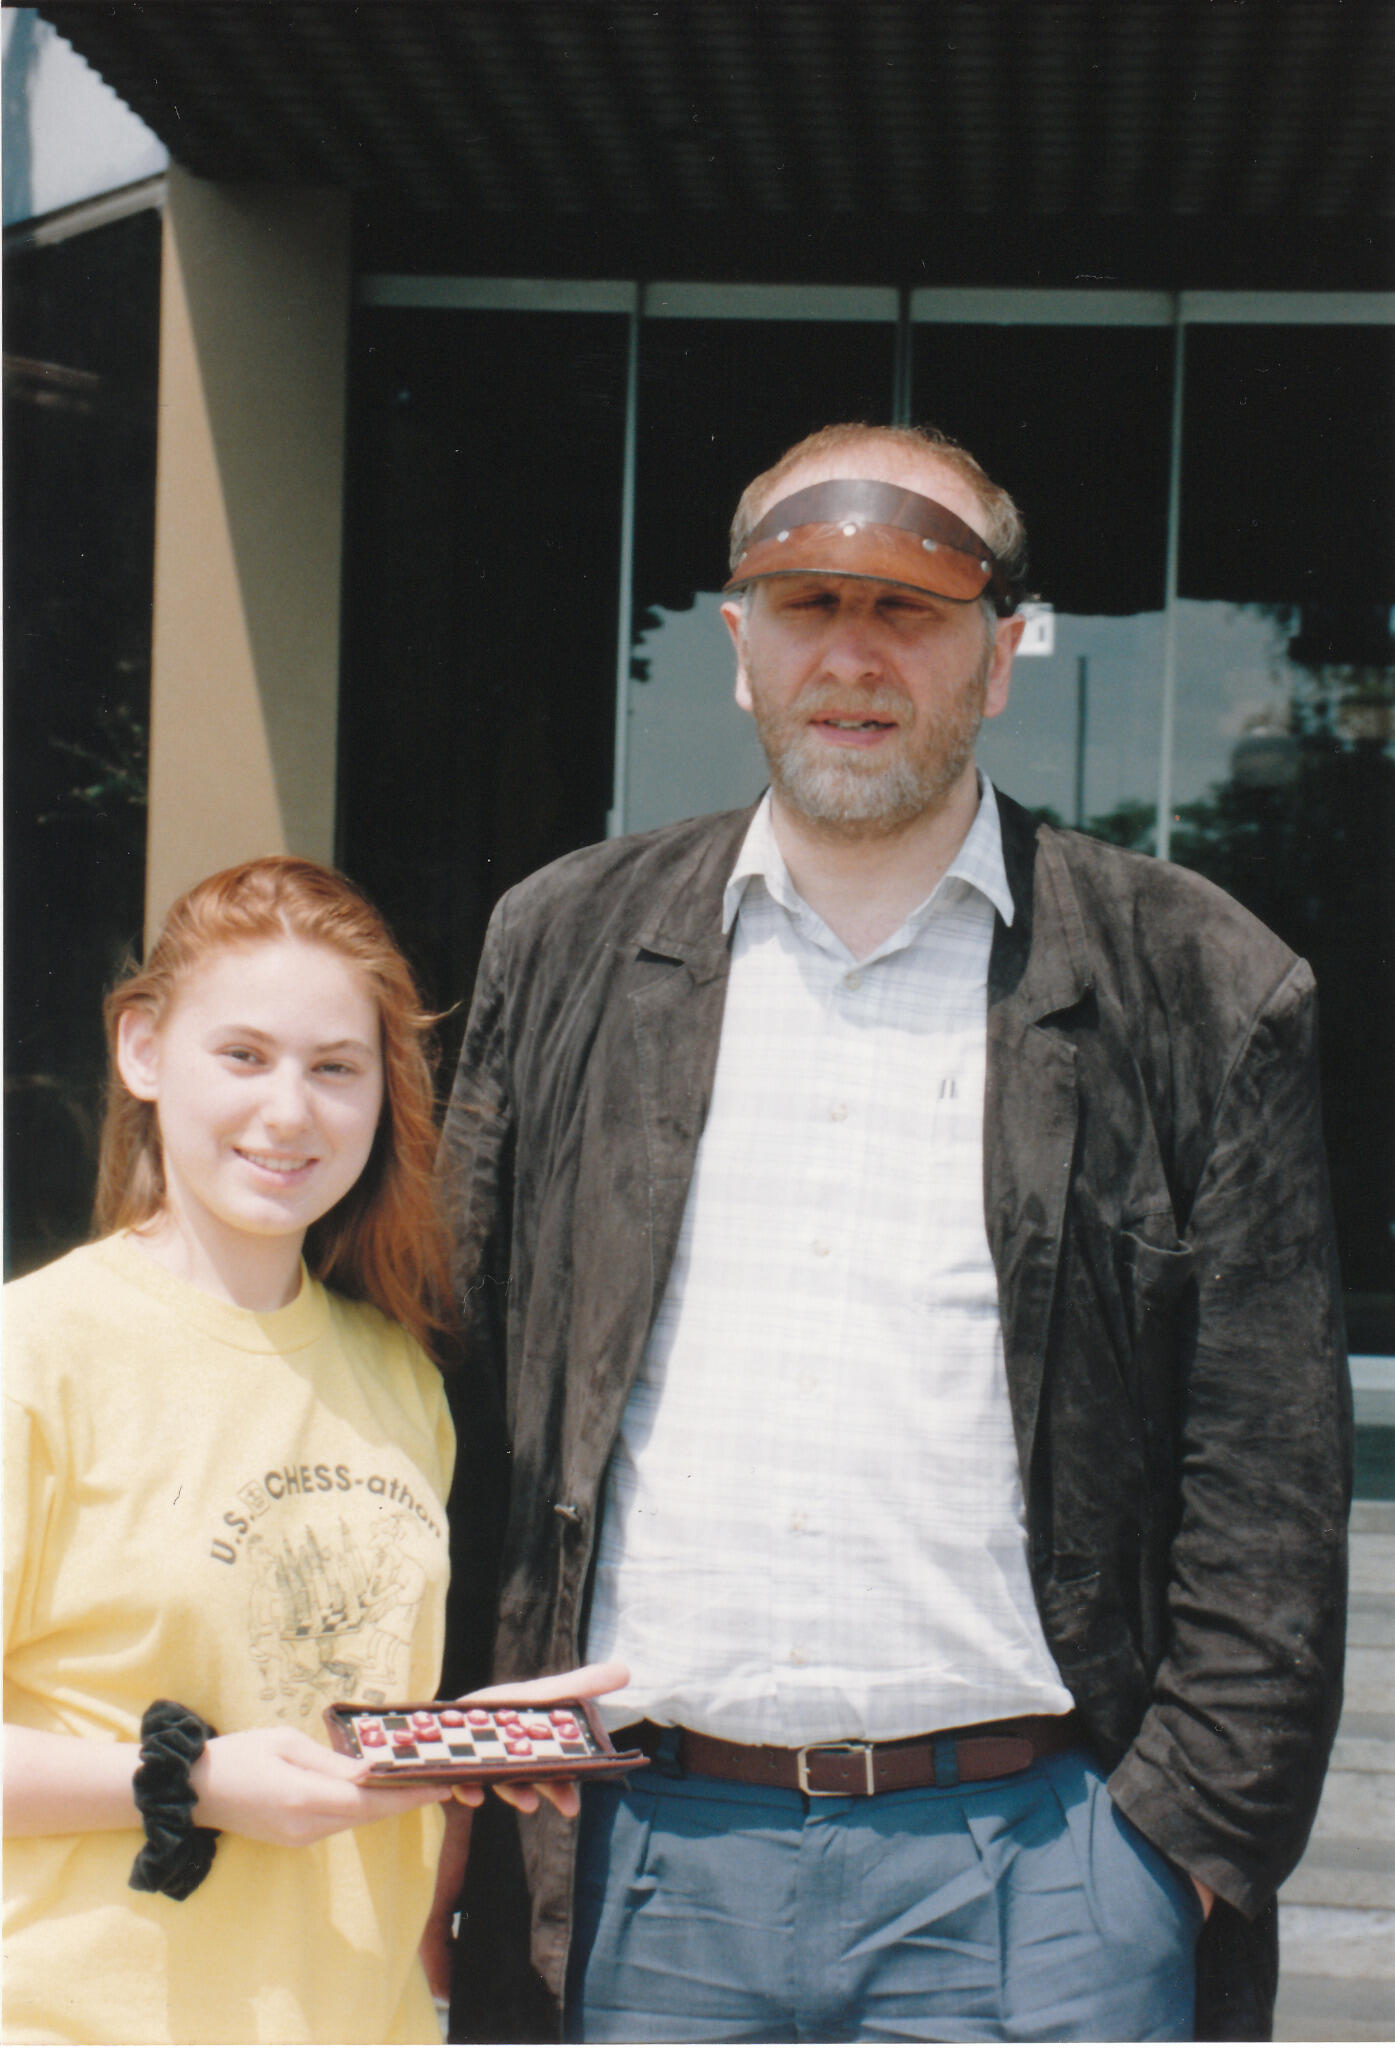 RT @GMJuditPolgar: Can you name this mystery man, who went upset when I broke his record, and then moved into our home for a while in? http://t.co/UDpLd6U77y